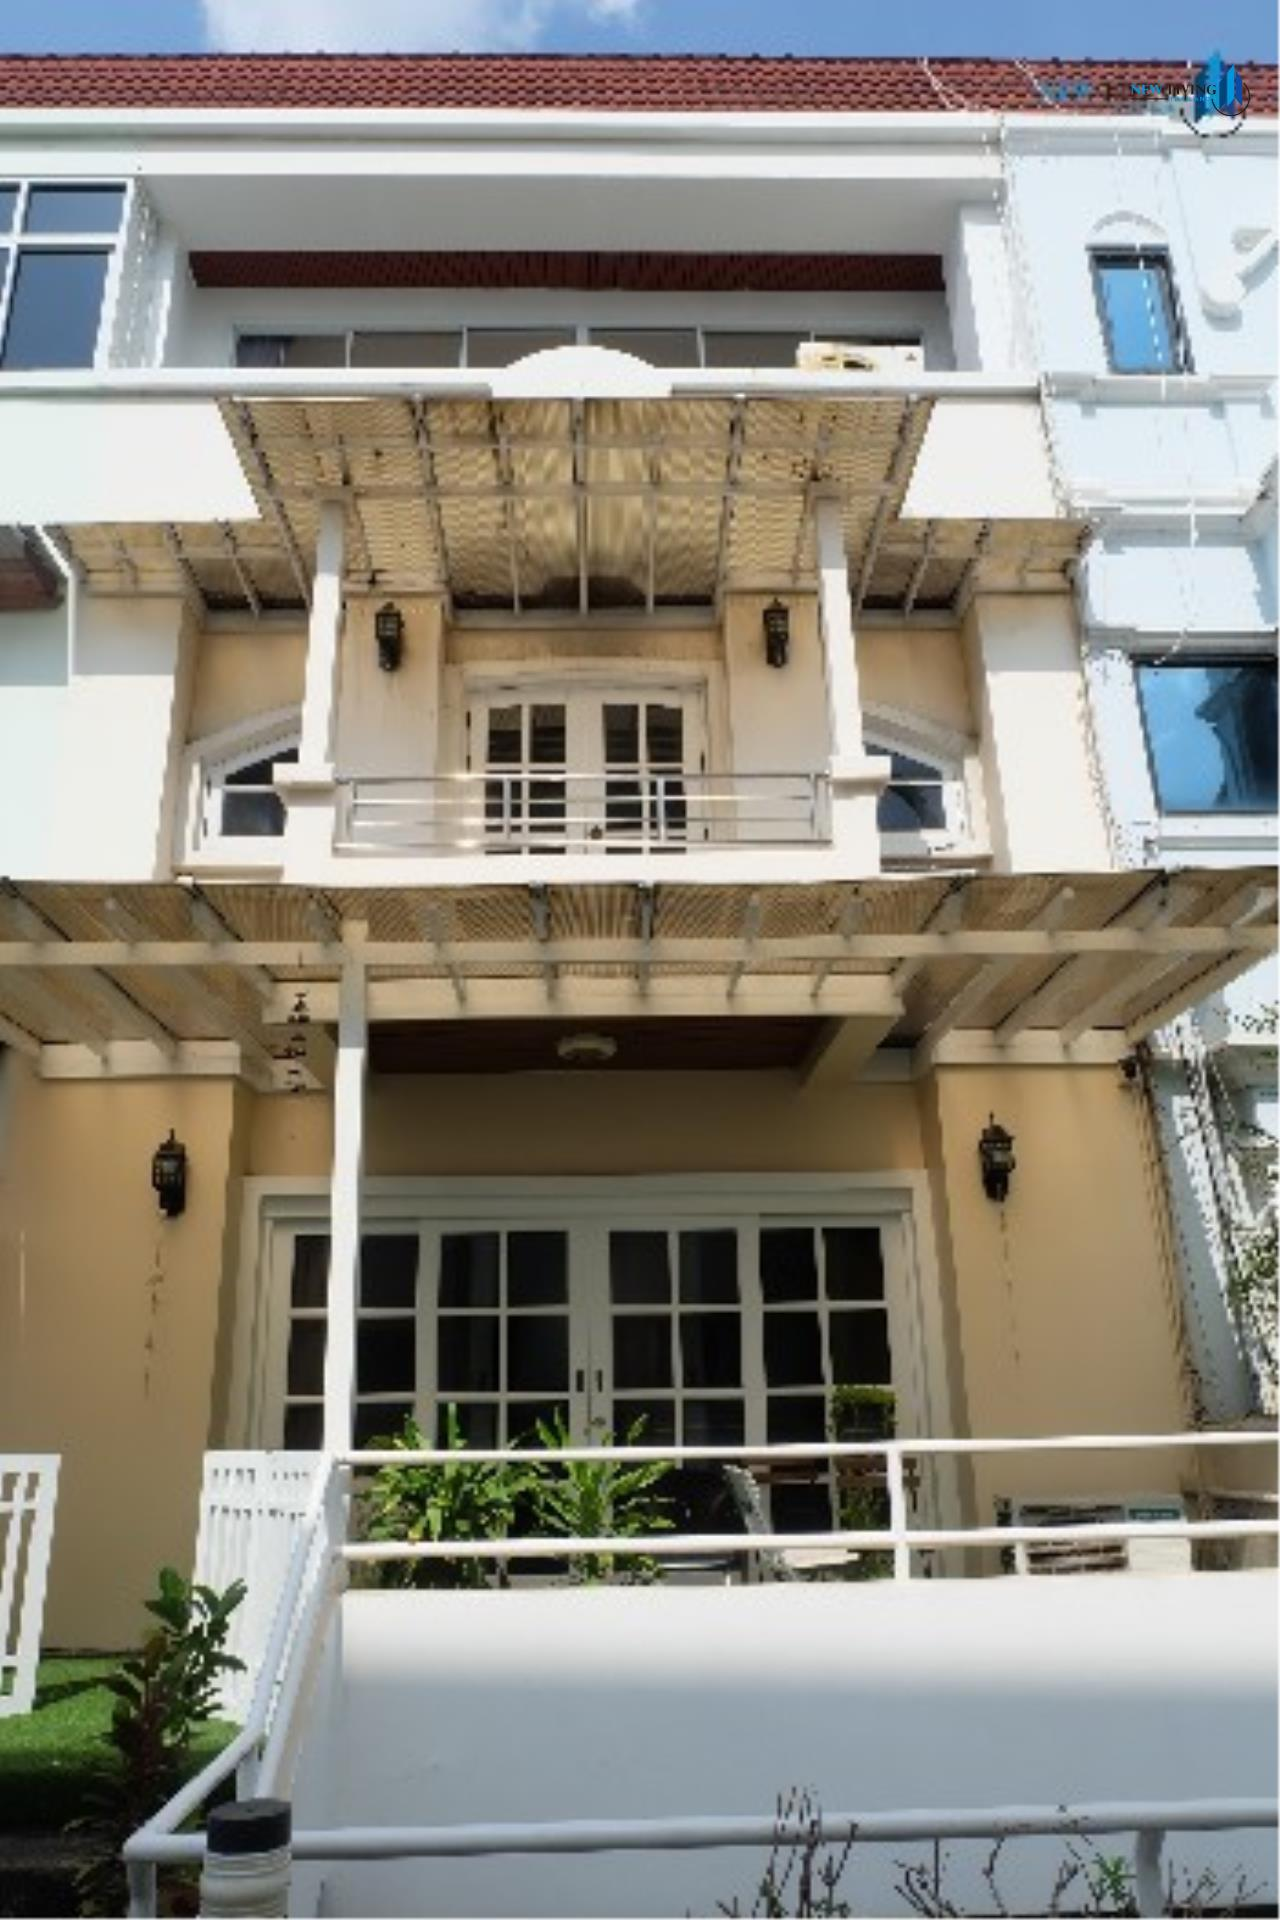 New Living Thailand Agency's (promotion below!!) ++Urgent sale, Townhouse in Ari++ Townhouse Greenpeace Village ** 6 bedrooms, 5 bathrooms, open view 1